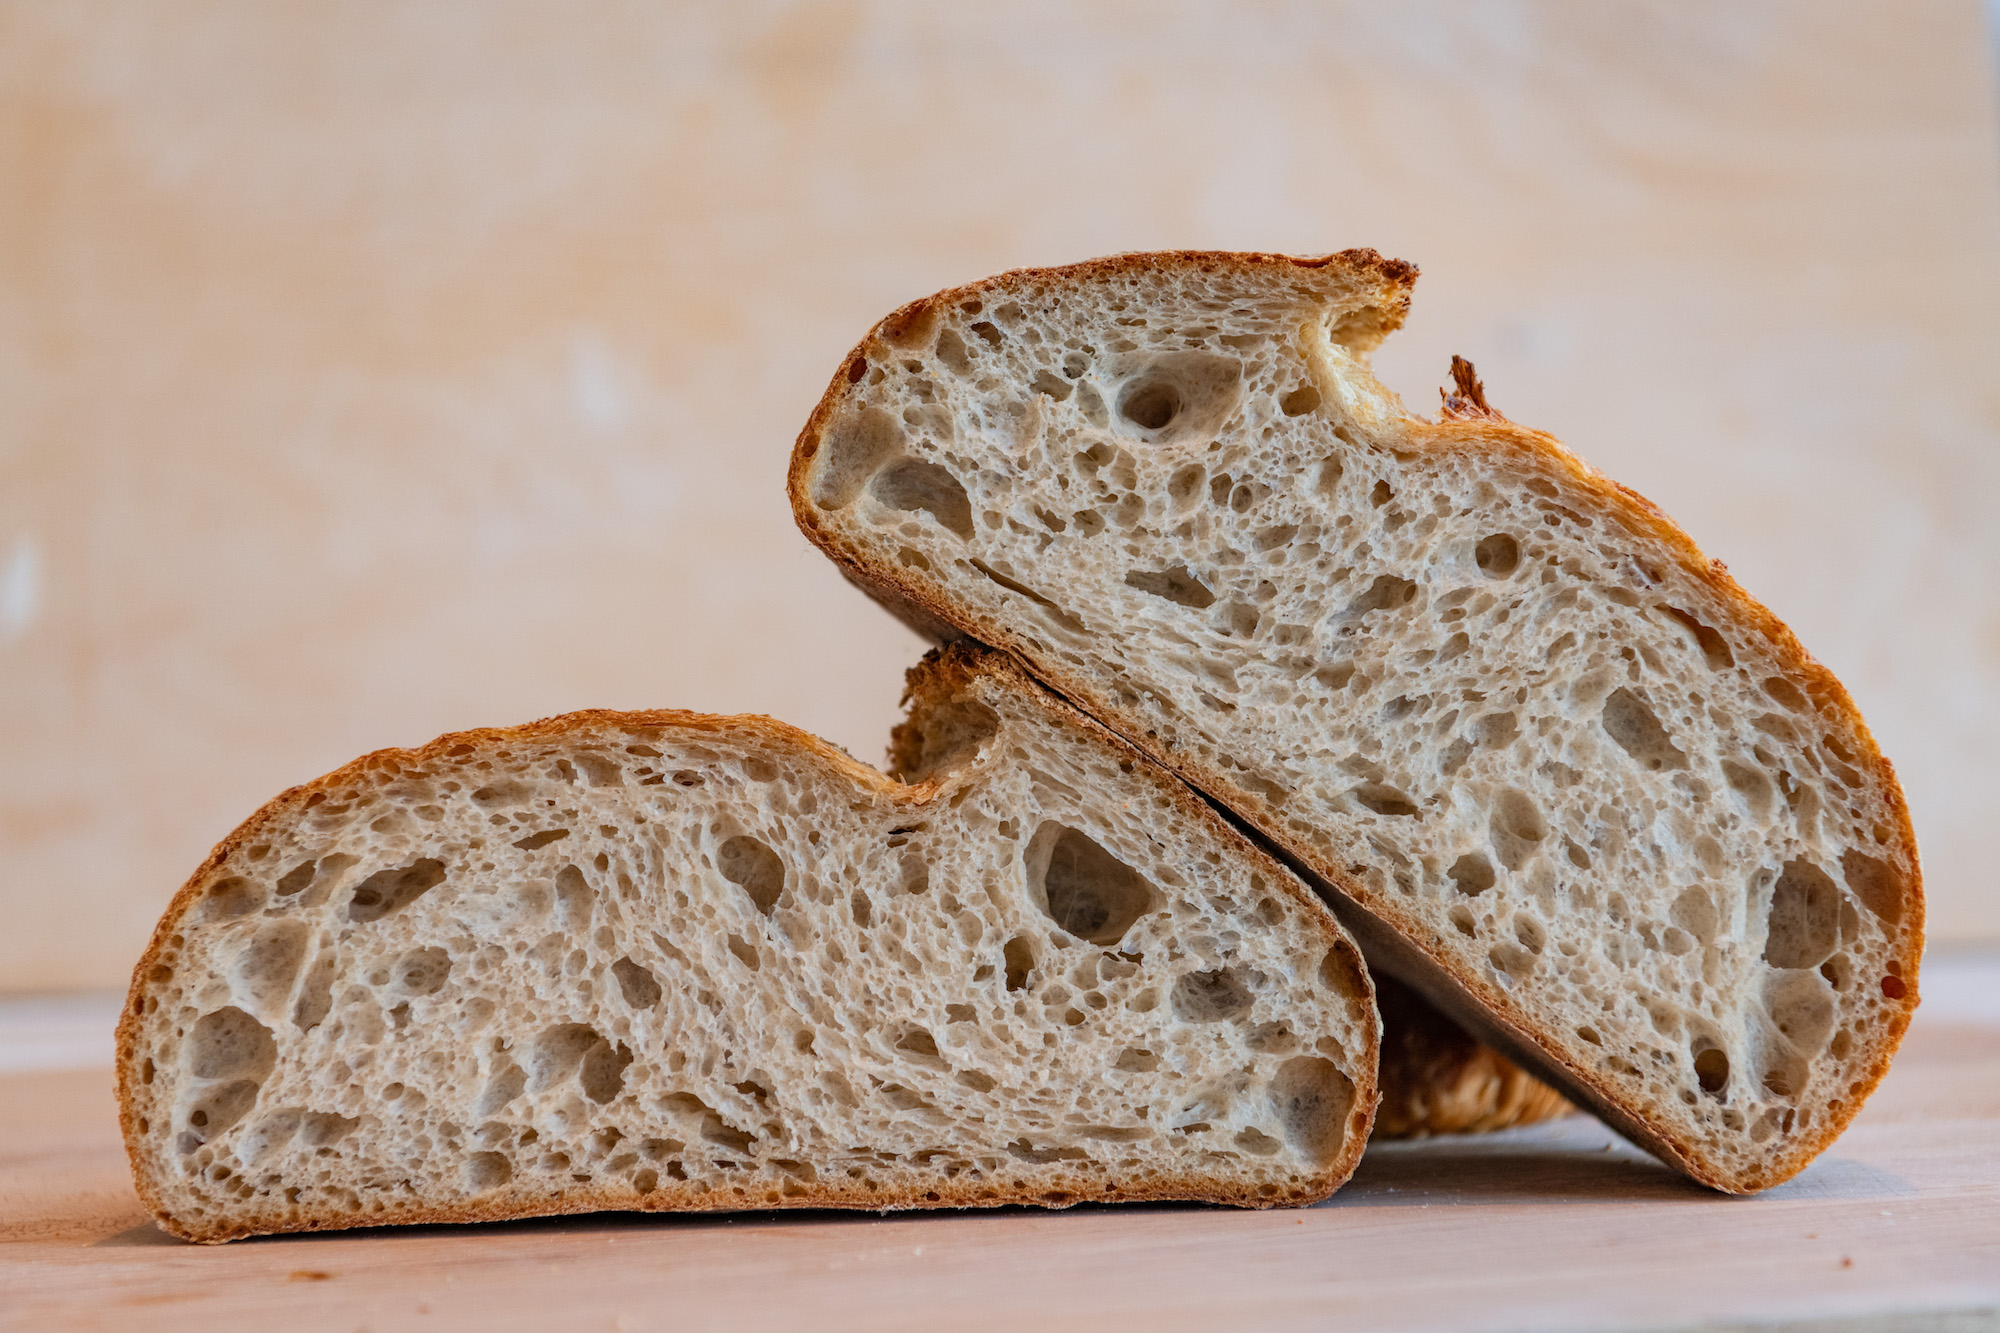 A loaf of rustic bread, cut in half to show the crumb.